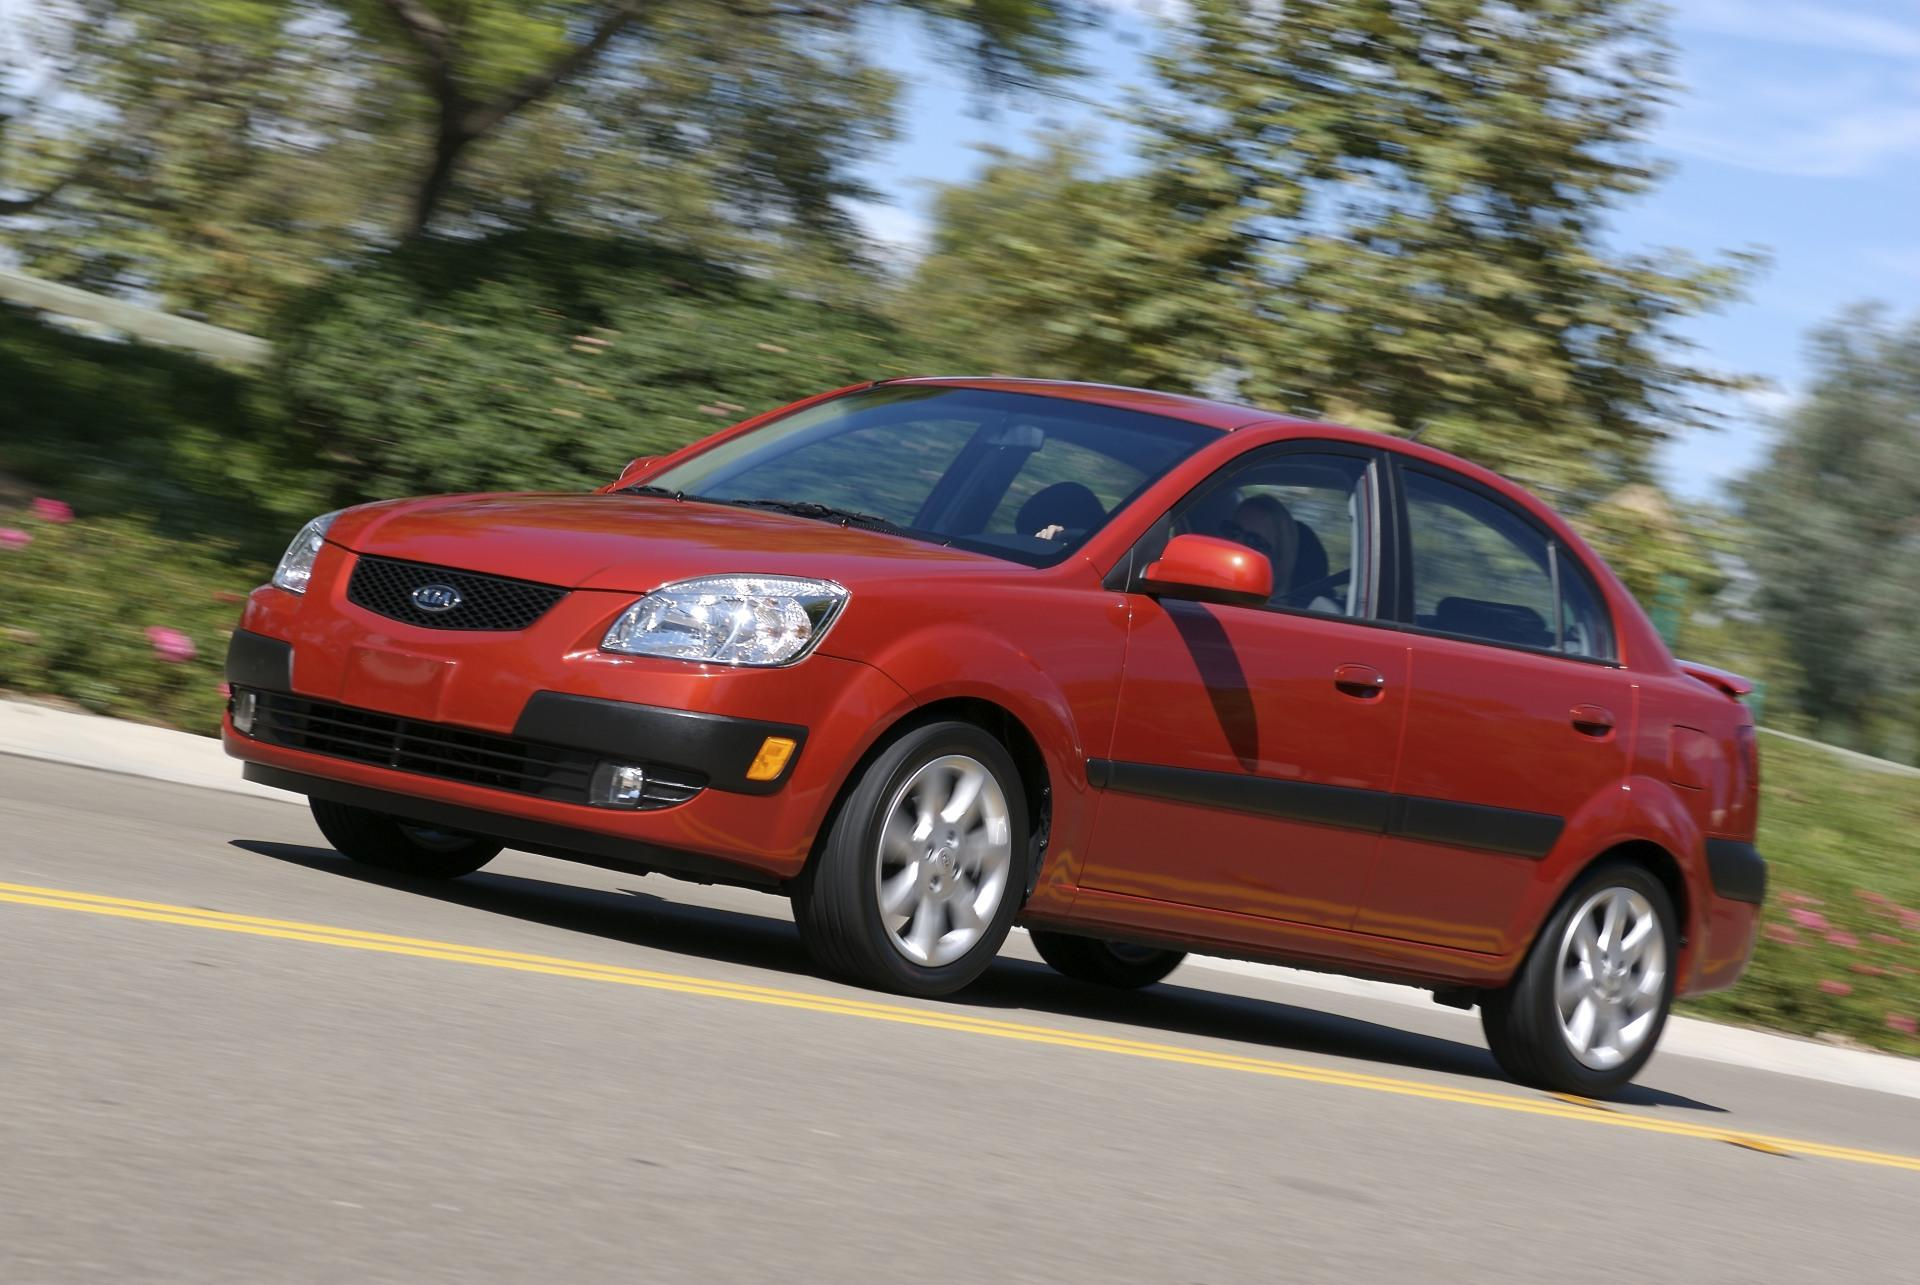 2009 Kia Rio Image. Photo 2 of 5